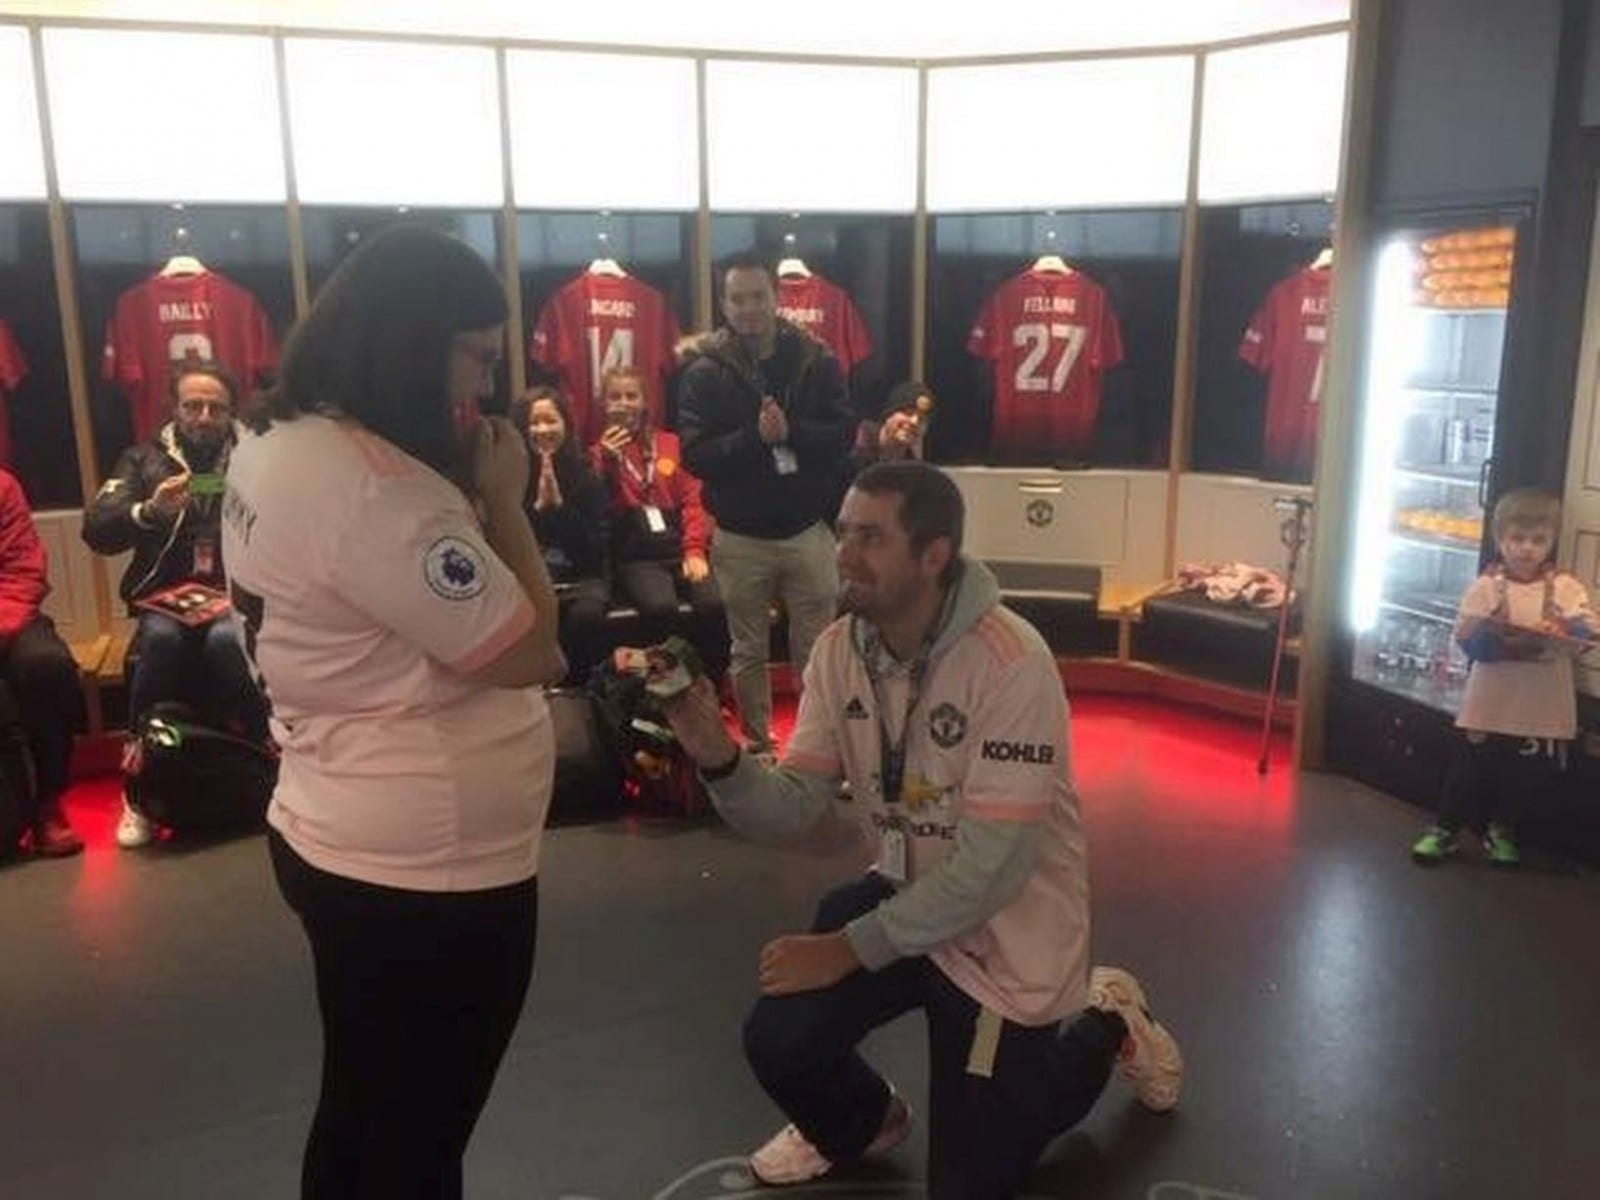 This Is The Moment A Manchester United Fan Popped The Question - In The Old Trafford Dressing Room